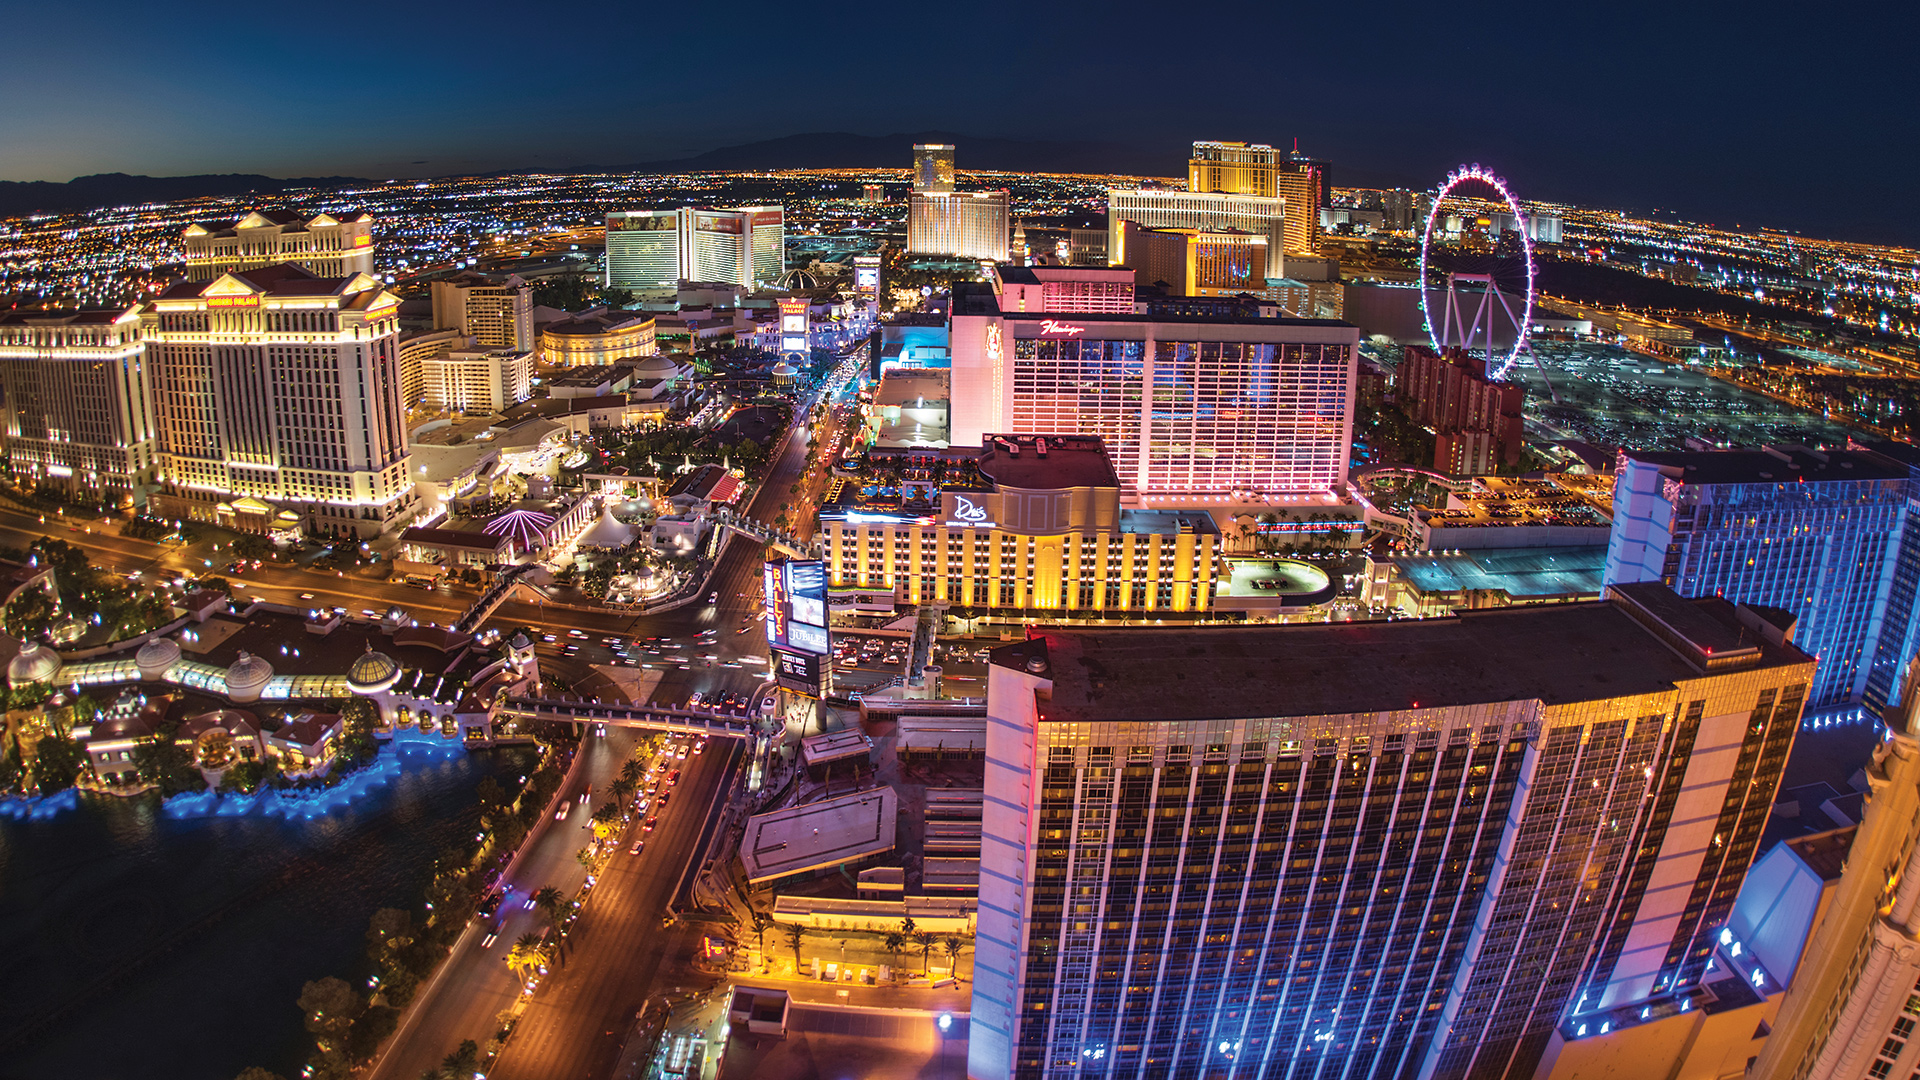 Convenient to the exciting Las Vegas Strip with fine dining, world-class entertainment, and gaming